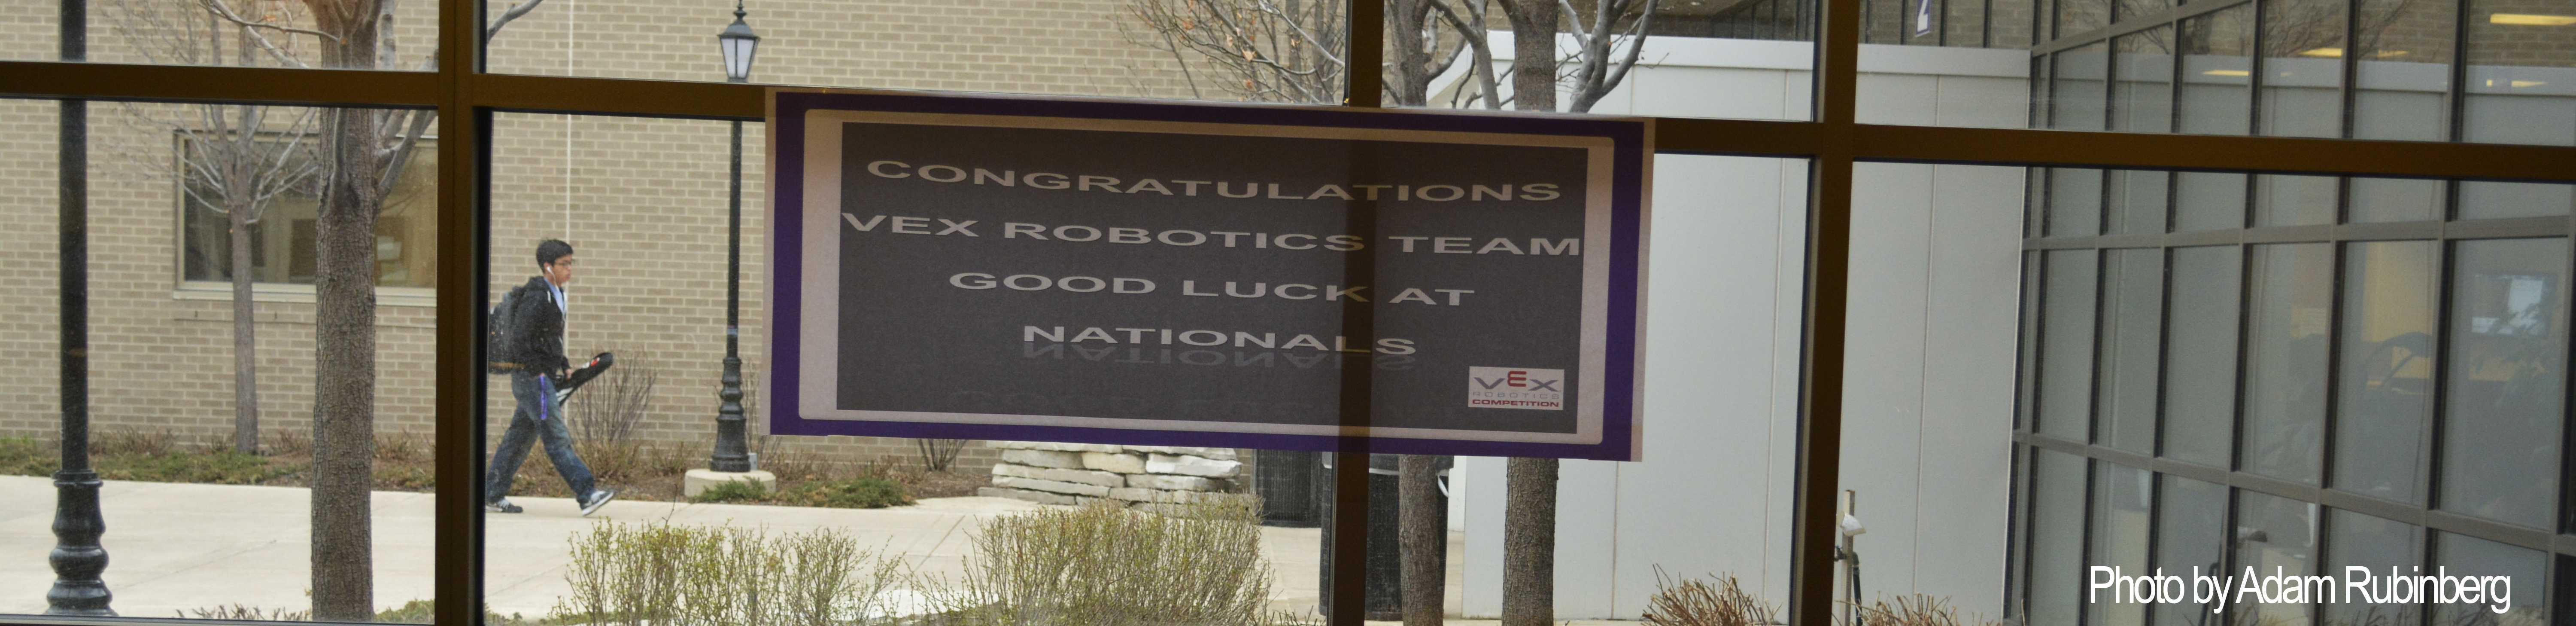 Robotics team heads to nationals